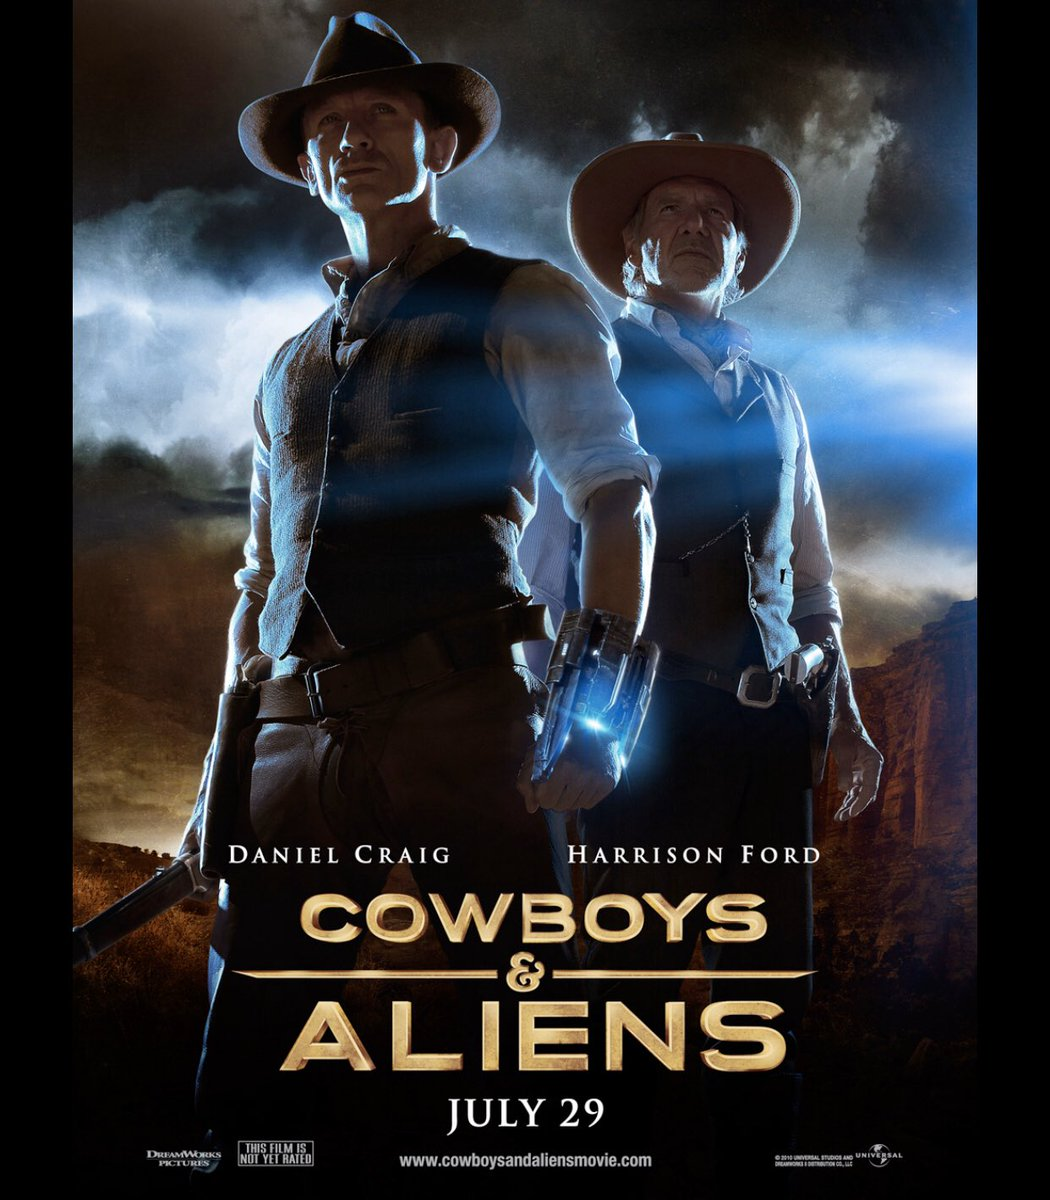 Comicsinmotion Podcast On Twitter This Week We Review Cowboys And Aliens 2011 Chris Calls Out Harrison Ford Of All People Give It A Listen Here Or Your Podcast Catching App Of Choice